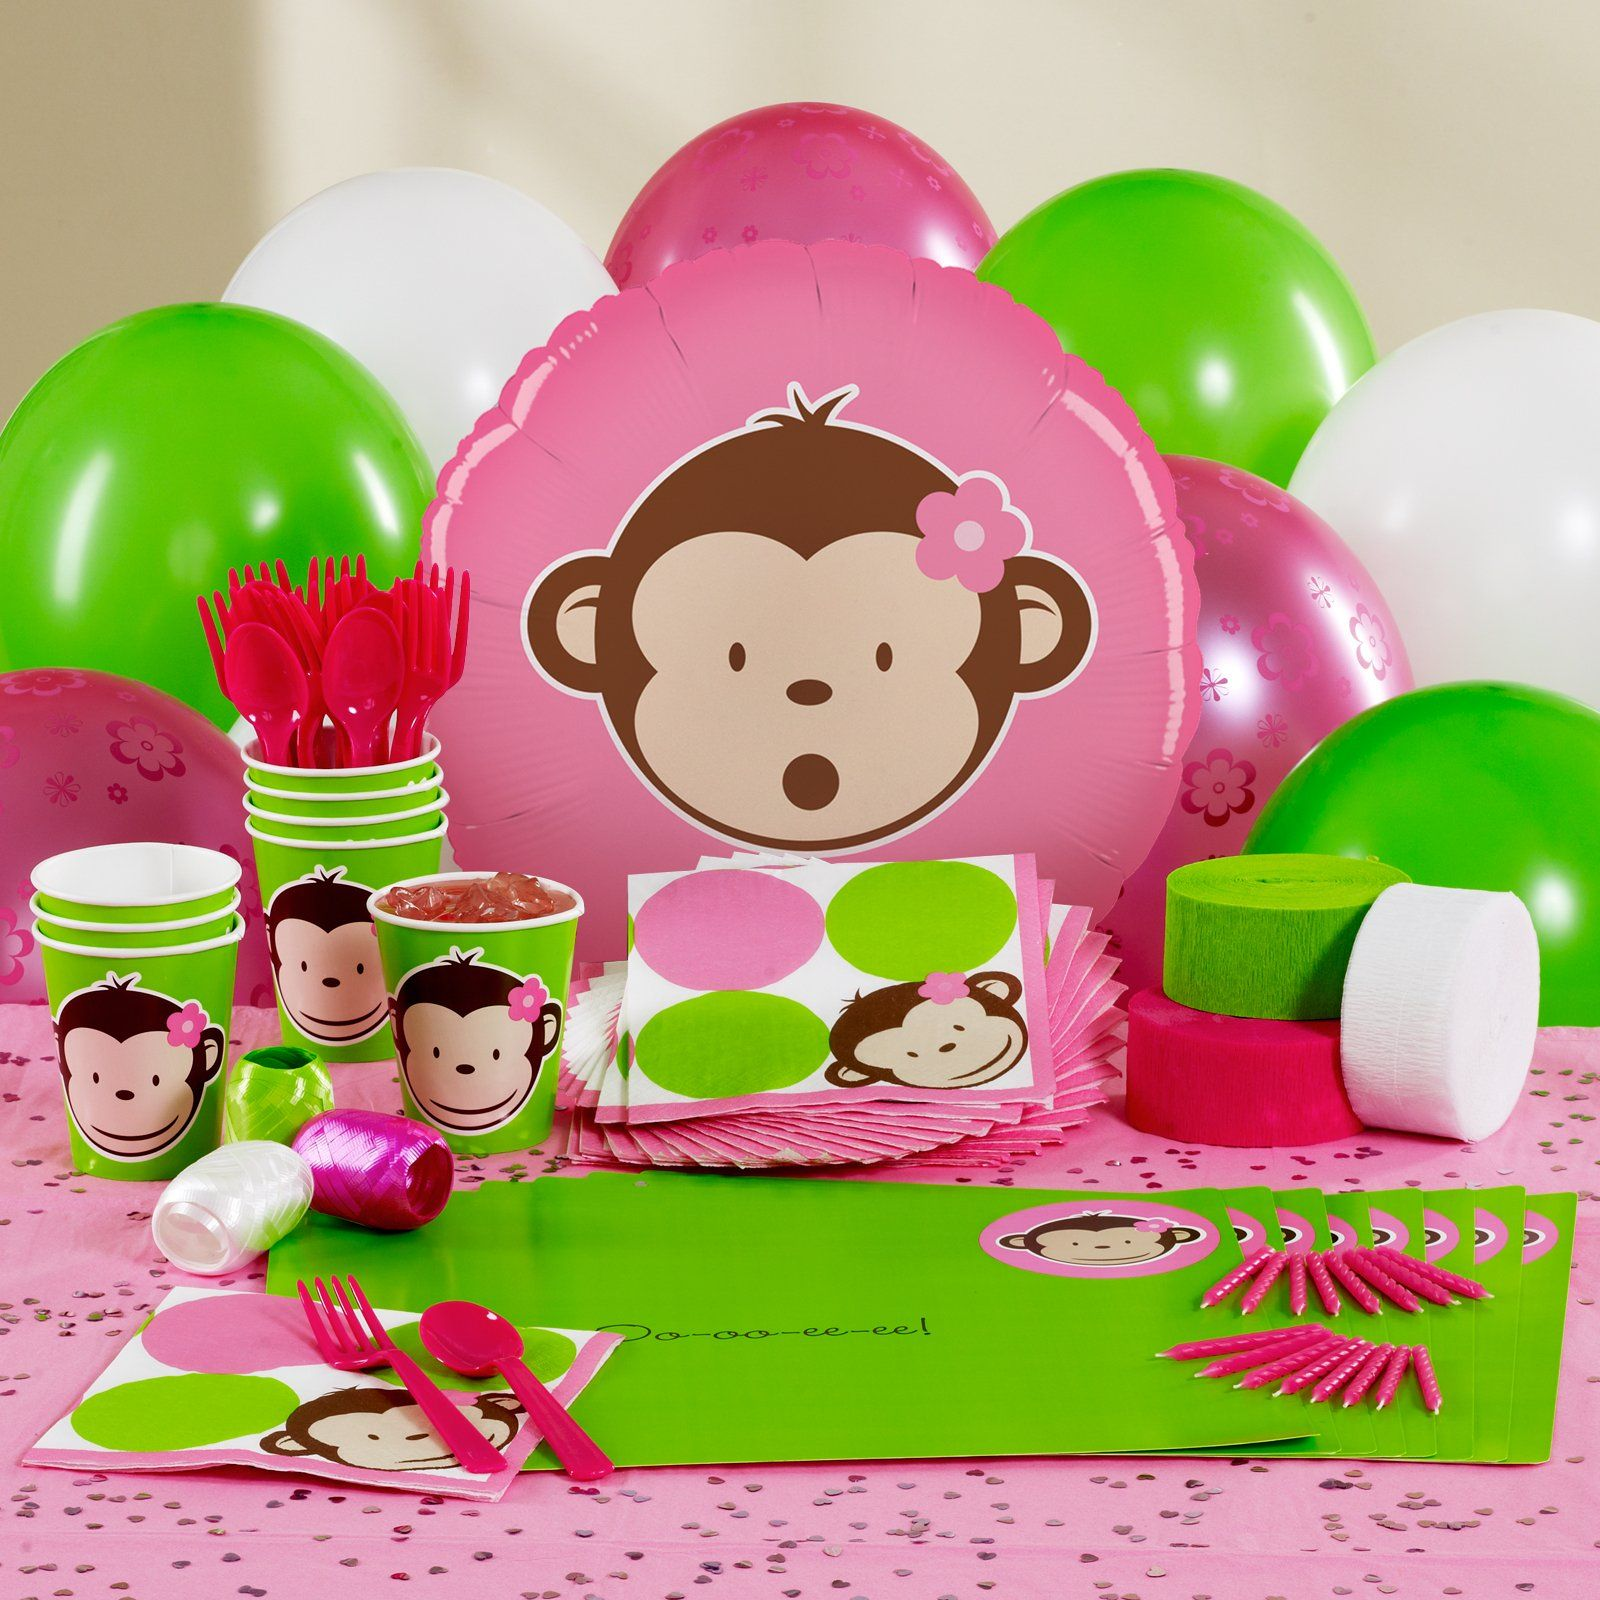 Personalized Mod Monkey birthday decorations I LOVE IT